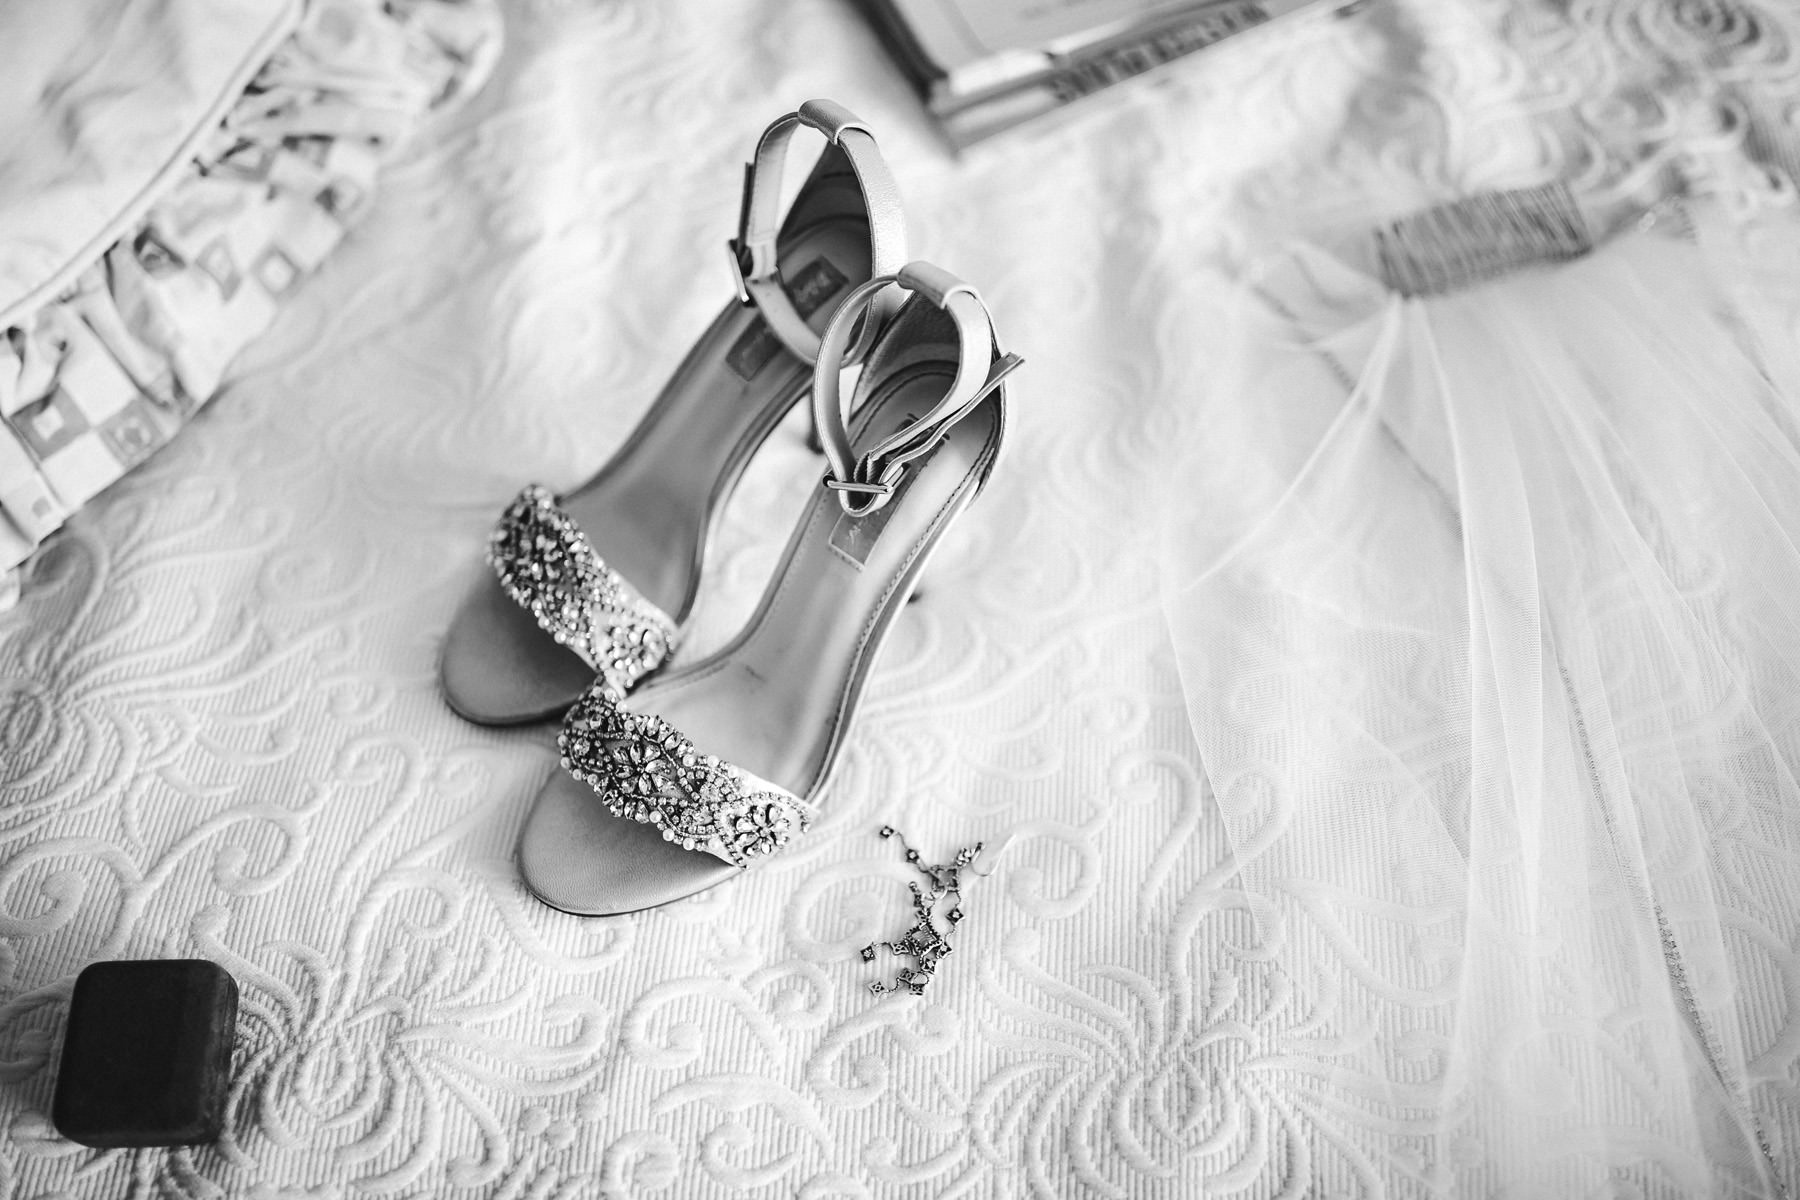 bride-shoes-black-and-white-veil-wedding-tiny-house-photo.jpg